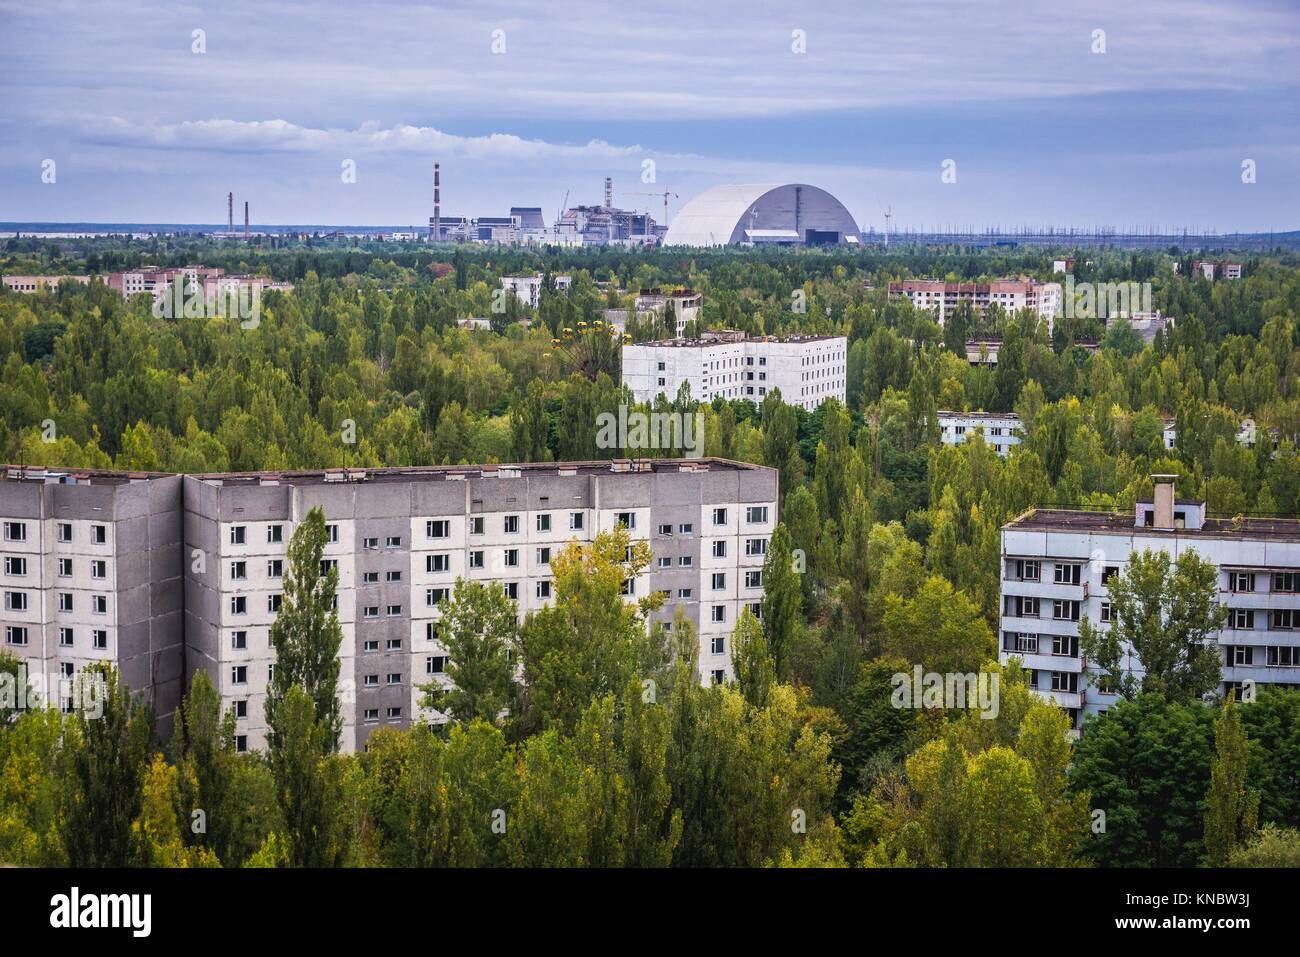 Aerial view of Pripyat ghost city, Ukraine. View with New Safe Confinement of Chernobyl Nuclear Power Plant. - Stock Image